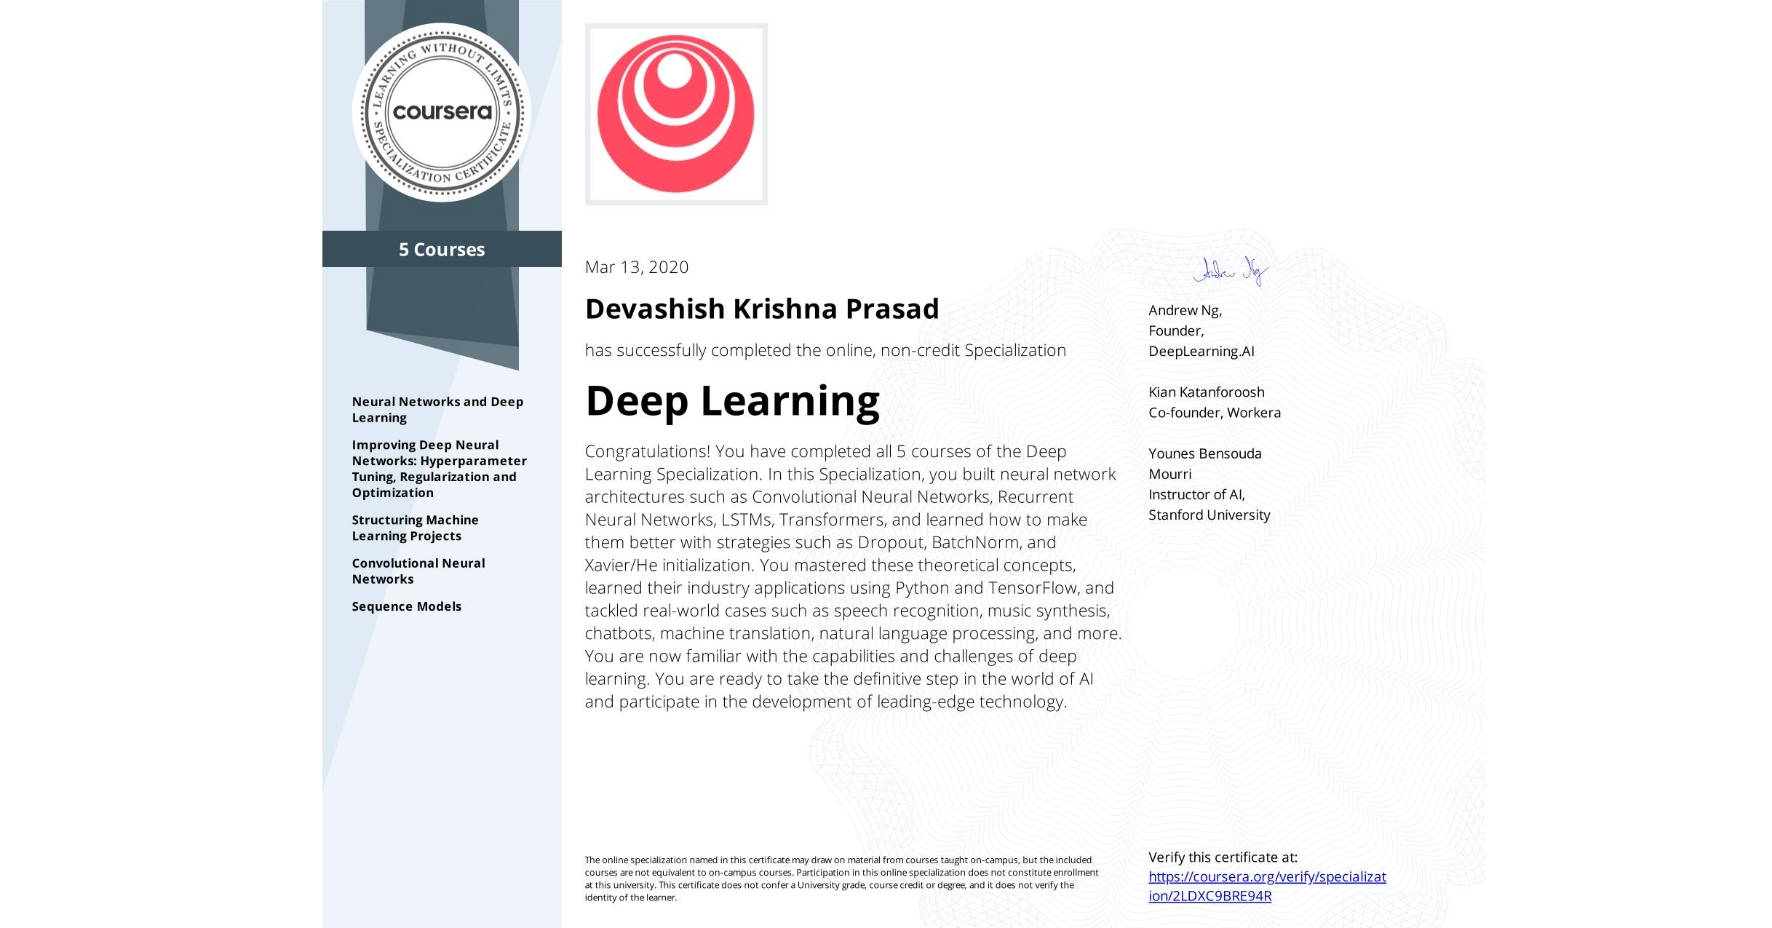 View certificate for Devashish Krishna Prasad, Deep Learning, offered through Coursera. Congratulations! You have completed all five courses of the Deep Learning Specialization.  In this Specialization, you built neural network architectures such as Convolutional Neural Networks, Recurrent Neural Networks, LSTMs, Transformers and learned how to make them better with strategies such as Dropout, BatchNorm, Xavier/He initialization, and more. You mastered these theoretical concepts and their application using Python and TensorFlow and also tackled real-world case studies such as autonomous driving, sign language reading, music generation, computer vision, speech recognition, and natural language processing.   You're now familiar with the capabilities, challenges, and consequences of deep learning and are ready to participate in the development of leading-edge AI technology.